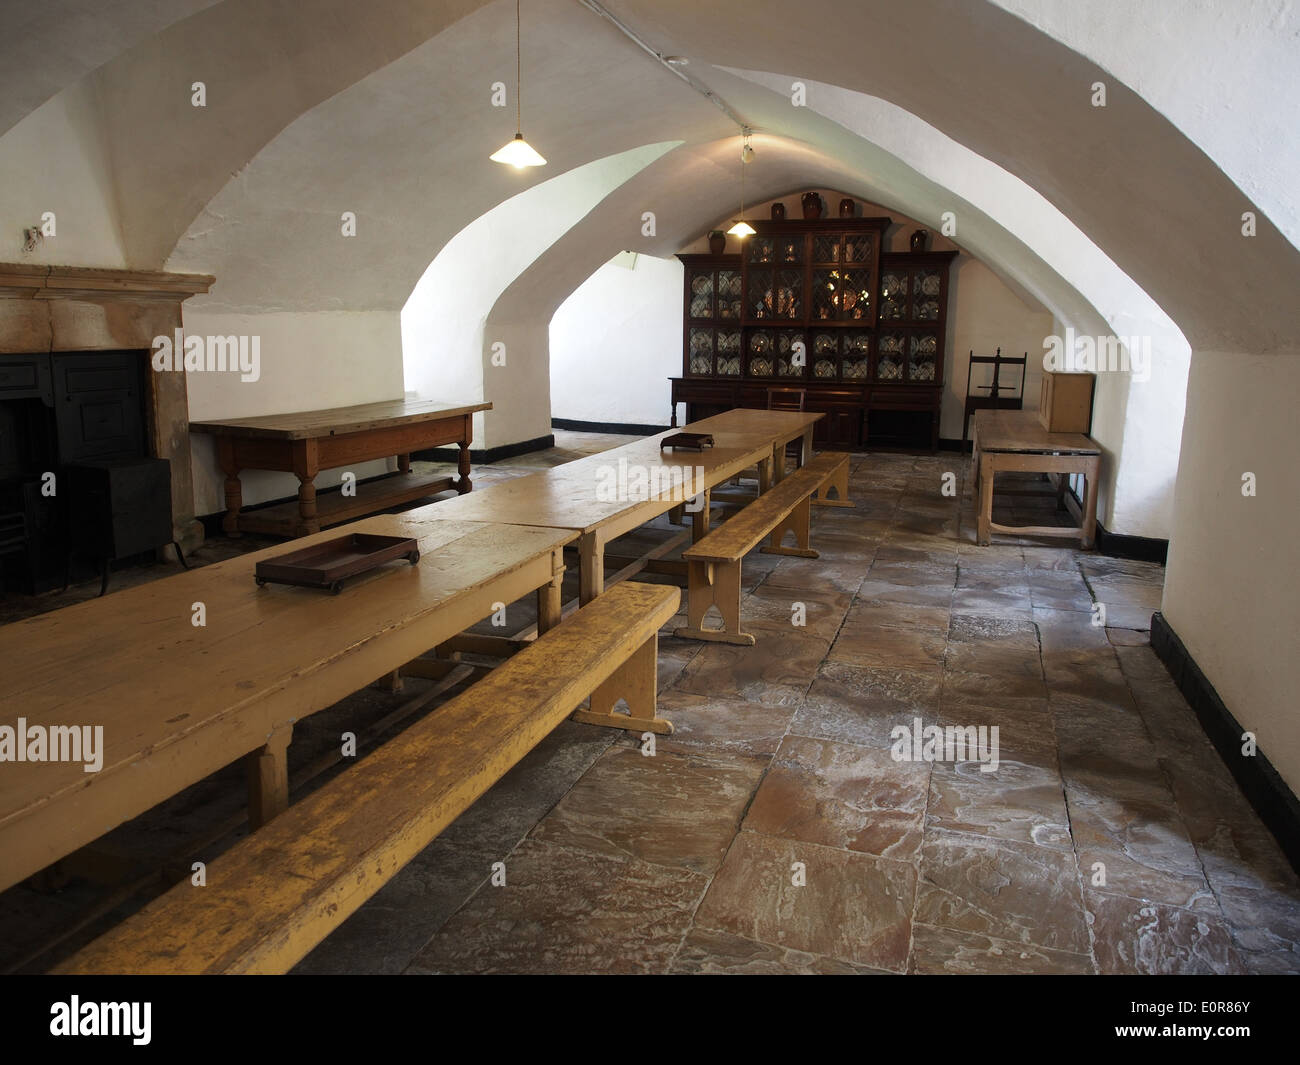 Servants dining hall at Raby Castle, England. - Stock Image